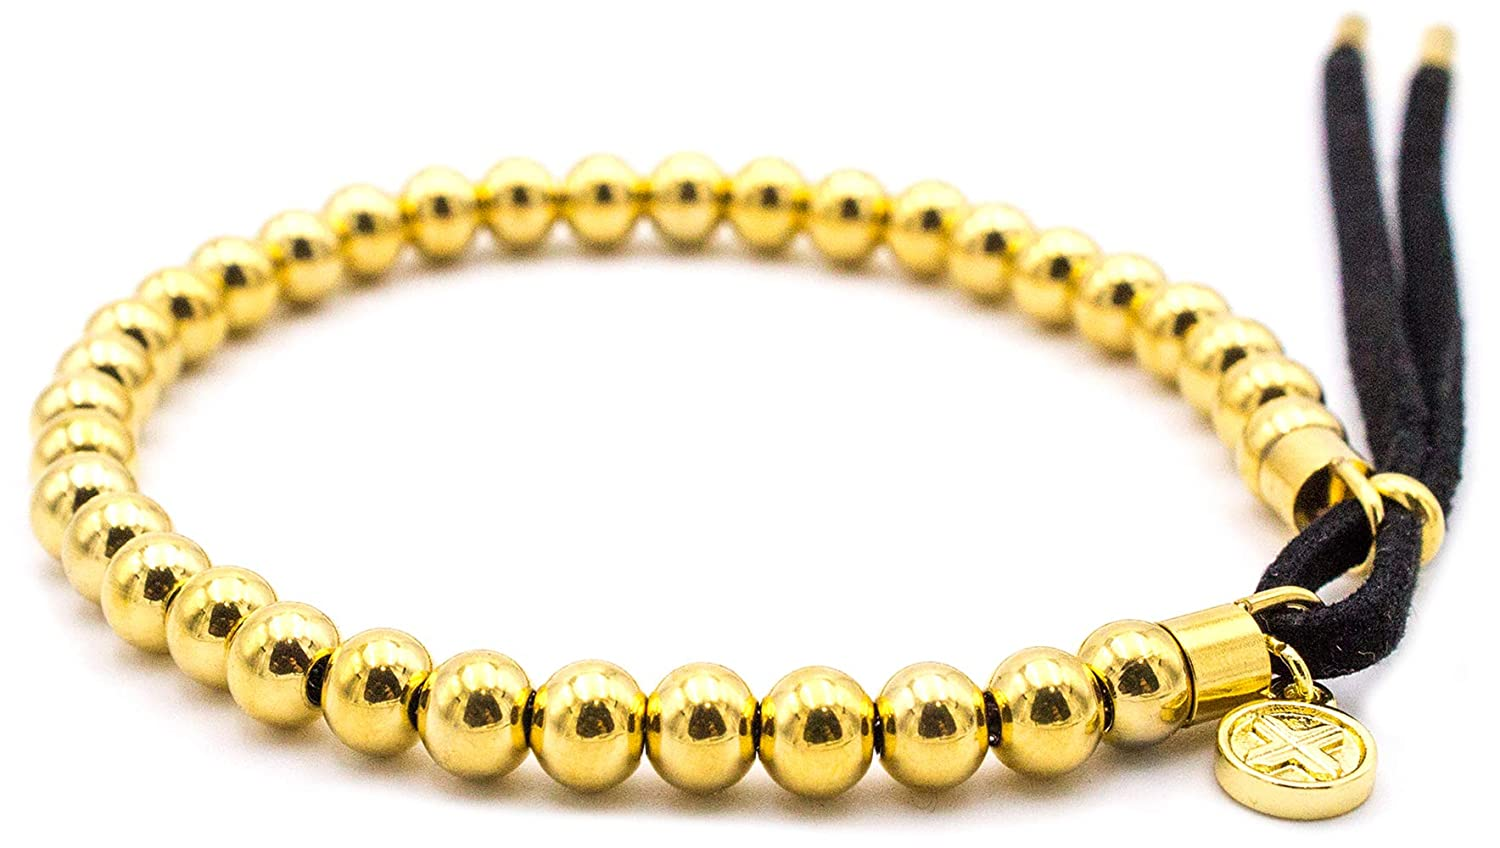 Electric Family X Beaded Bracelet - Gold - High Grade Stainless Steel - Beaded Chain - Adjustable Leather Strap - Everyday Wear - X Charm Attached EFB-METAL-BEADED-GLD